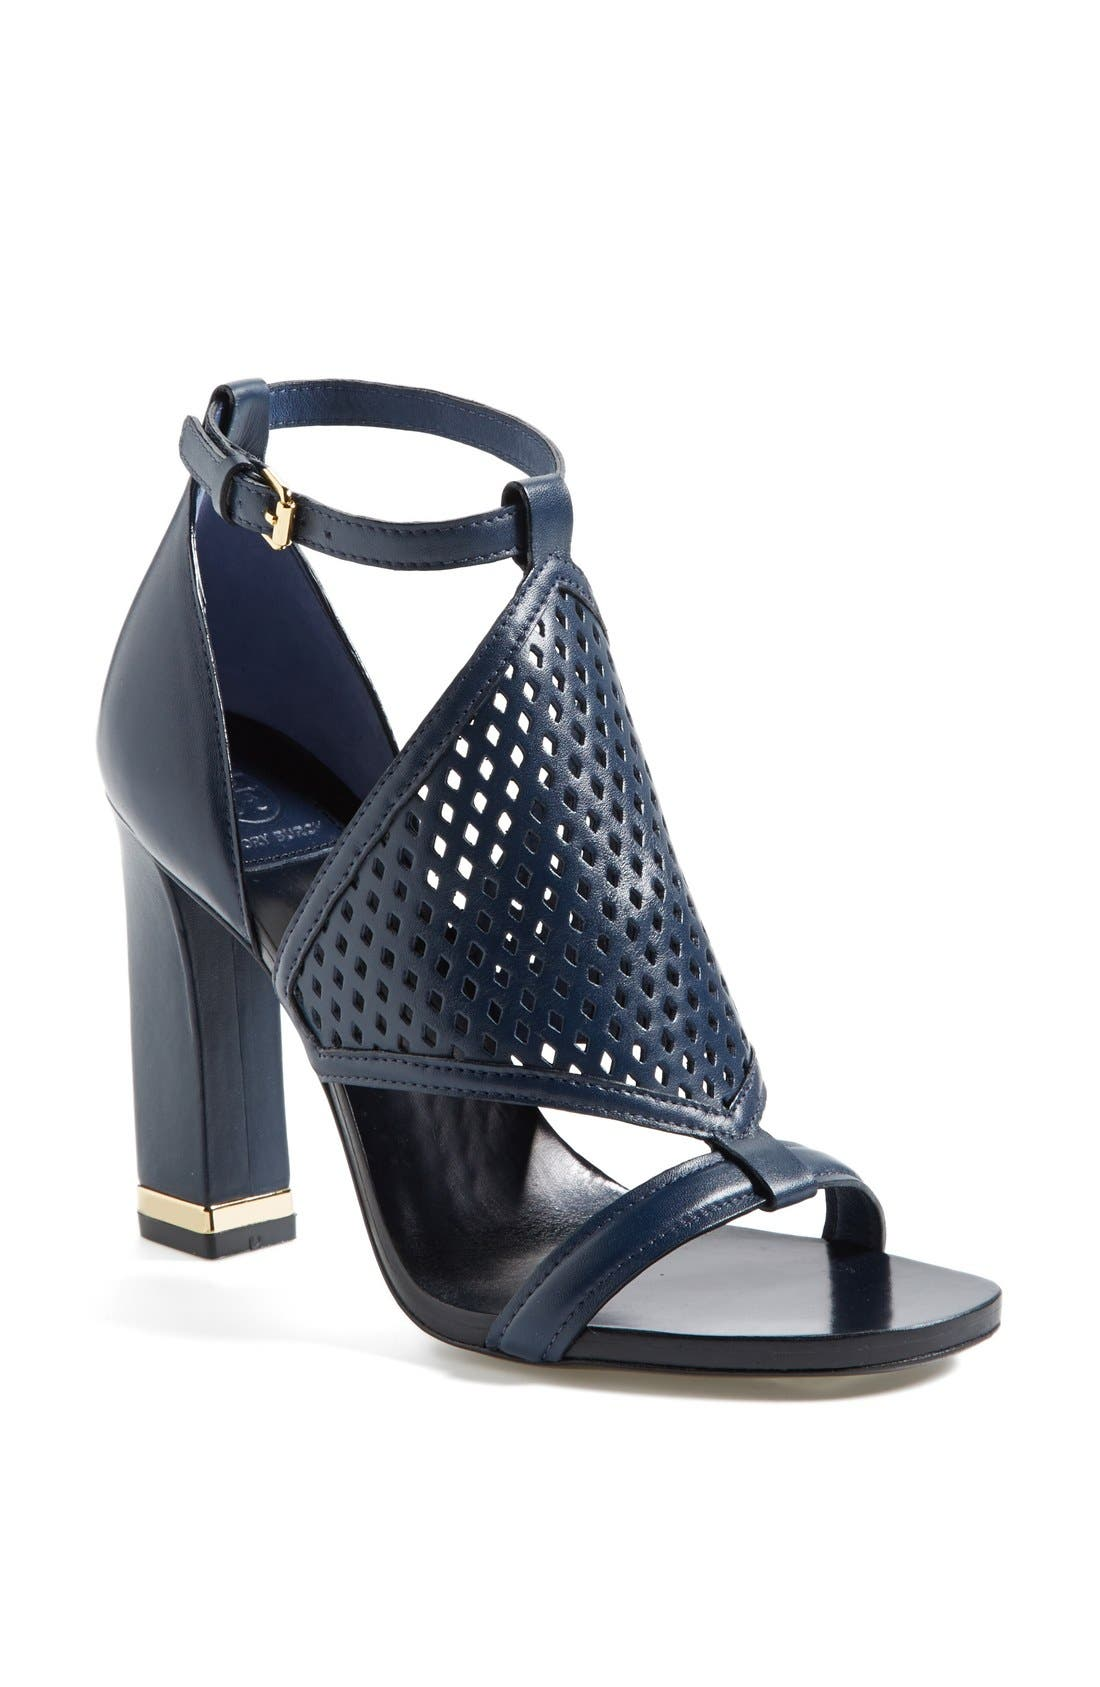 Alternate Image 1 Selected - Tory Burch 'Doris' Sandal